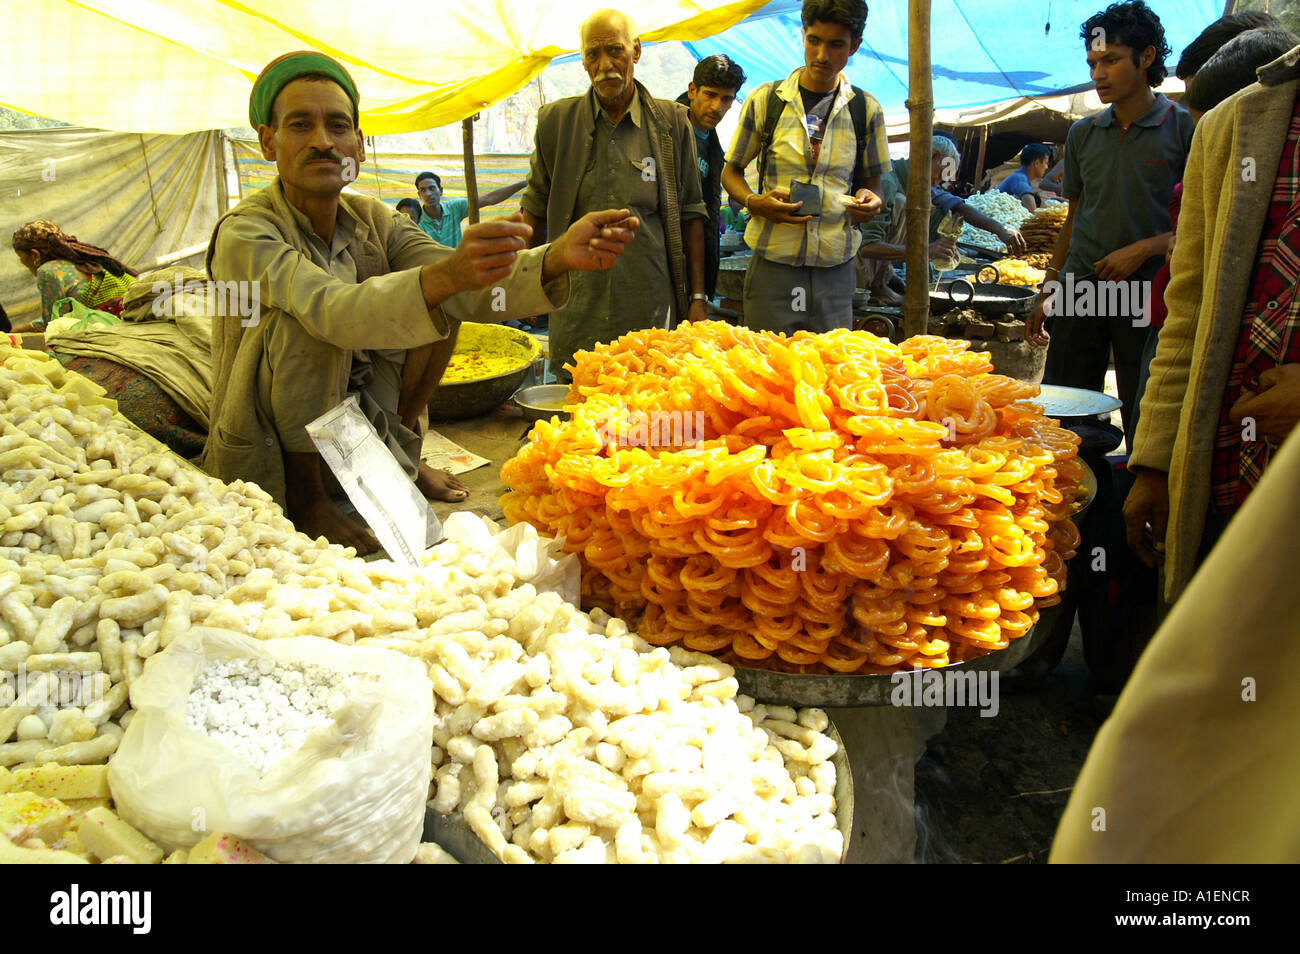 Stalls with pretzel at Dussehra fair with enormous variety of rich Indian cuisine meals, Kullu, India - Stock Image